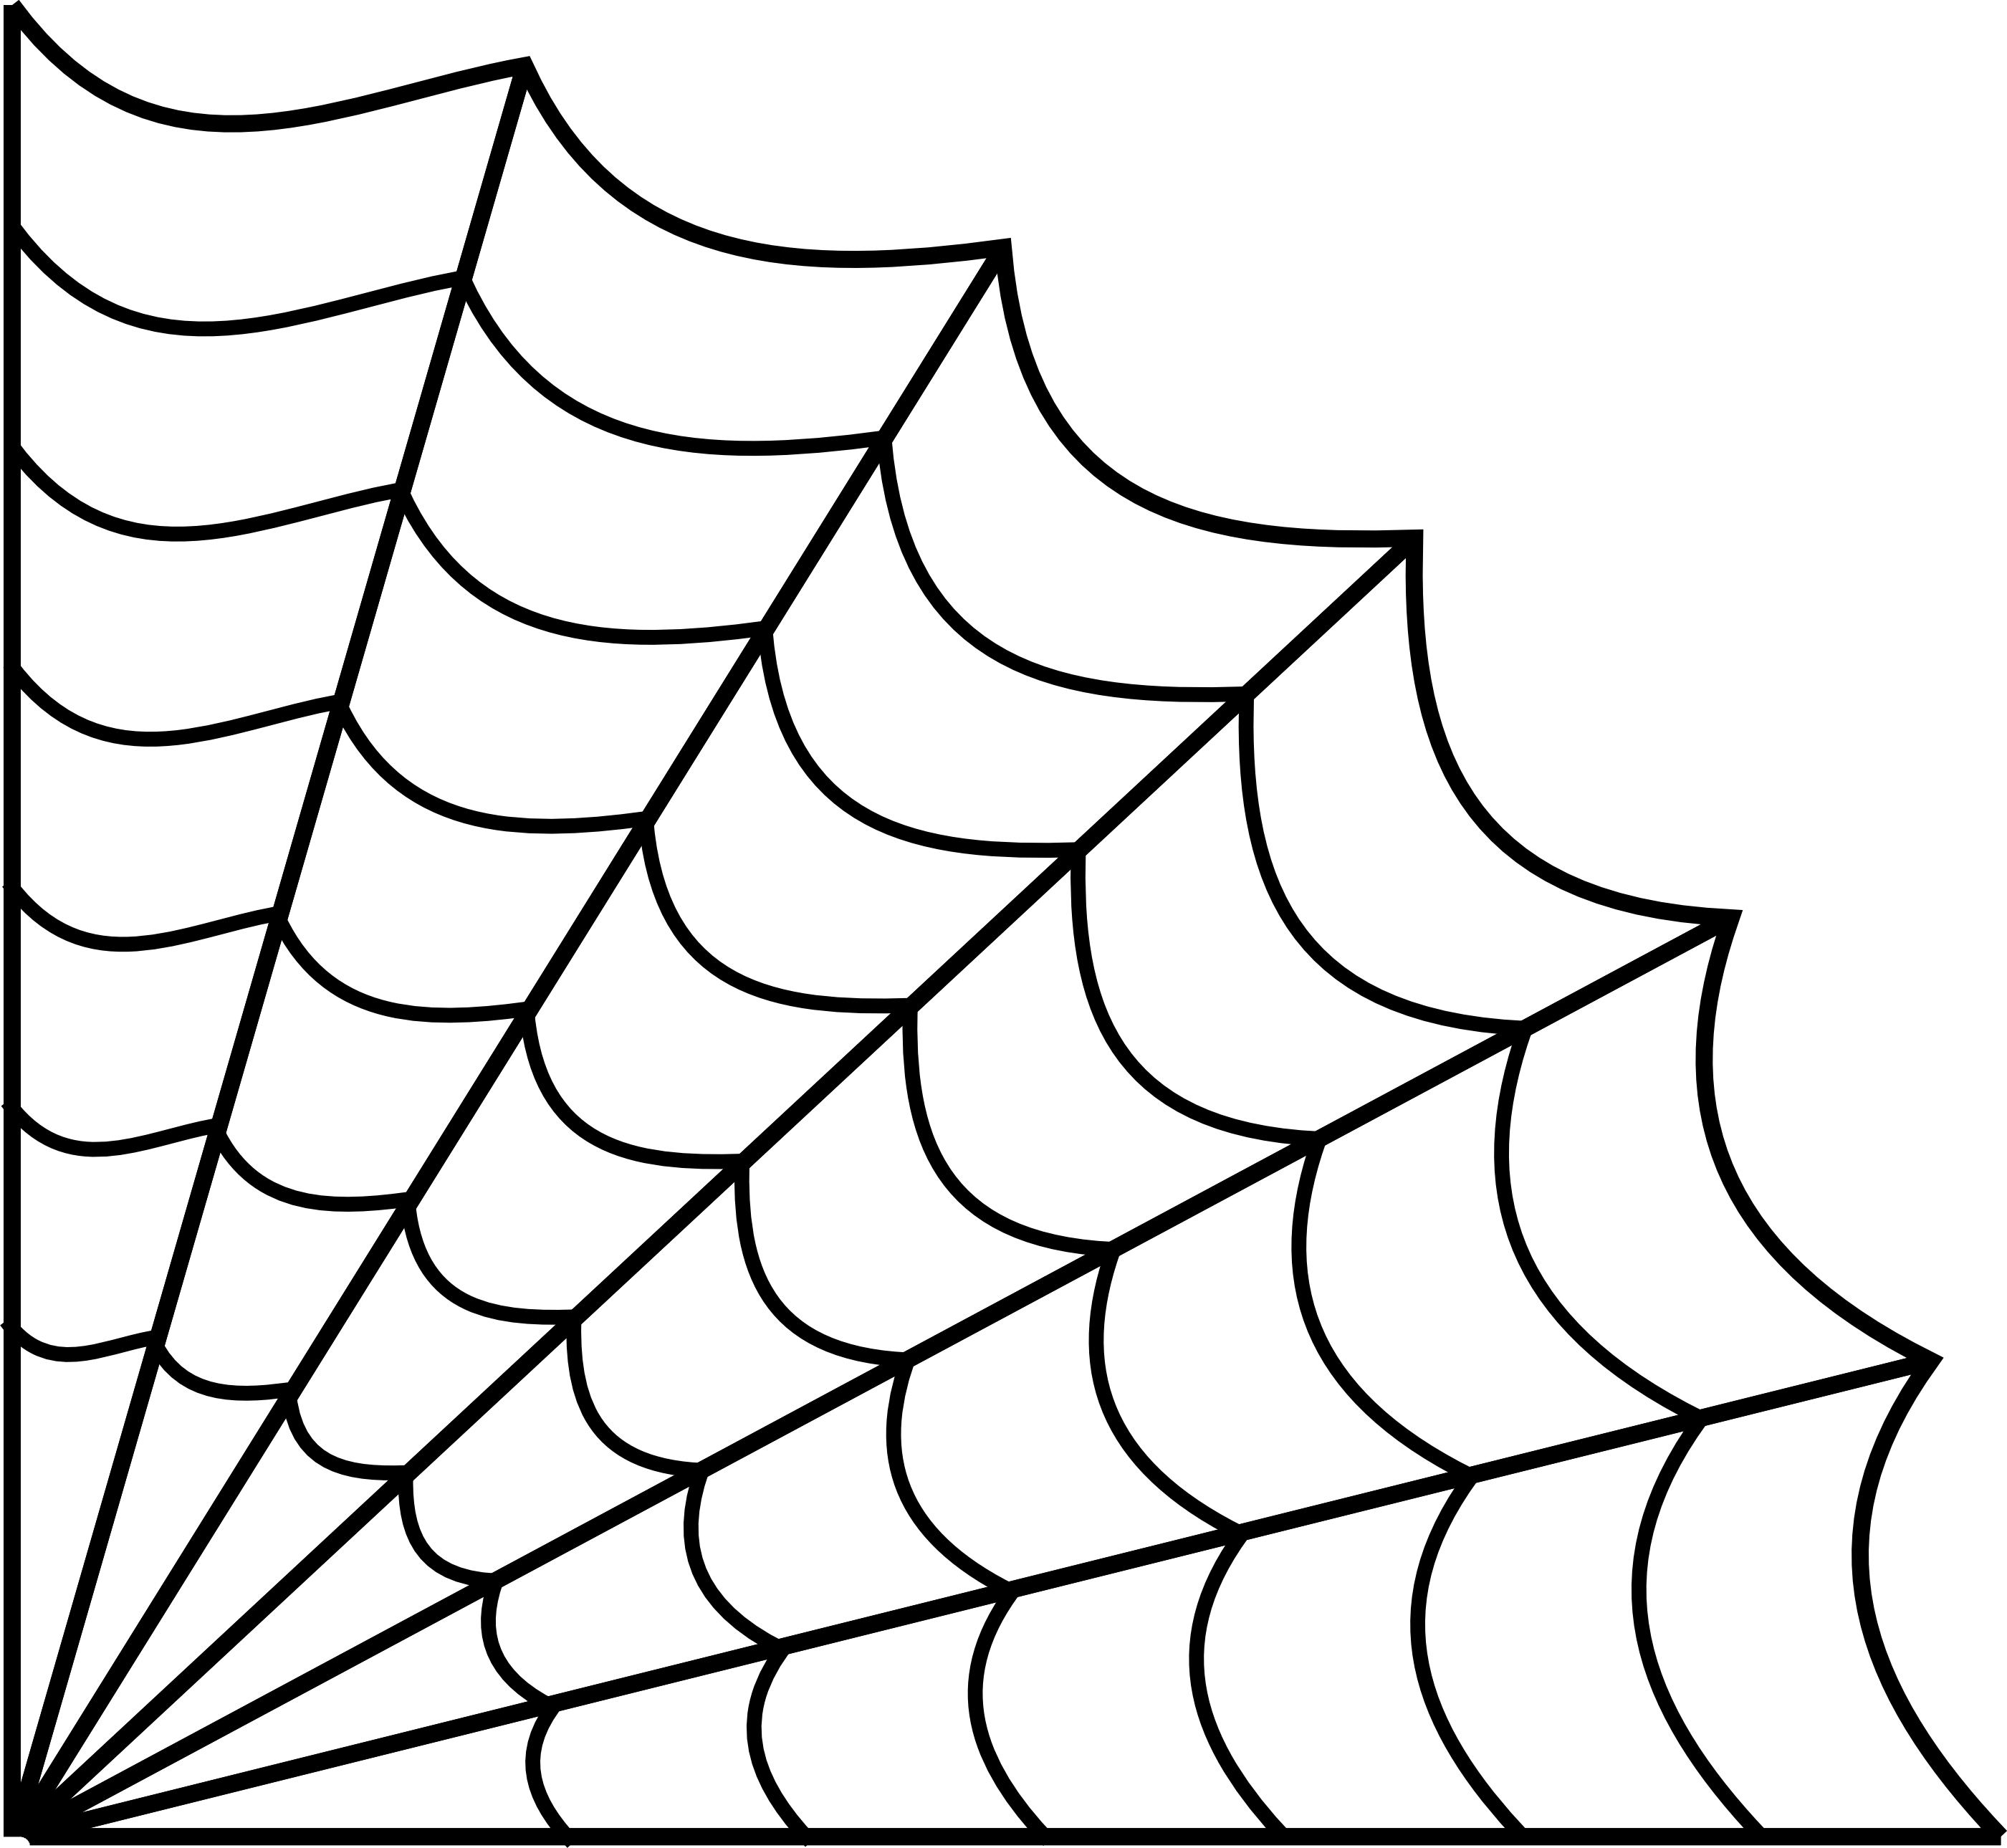 2801x2579 Drawn Spider Web Line Drawing